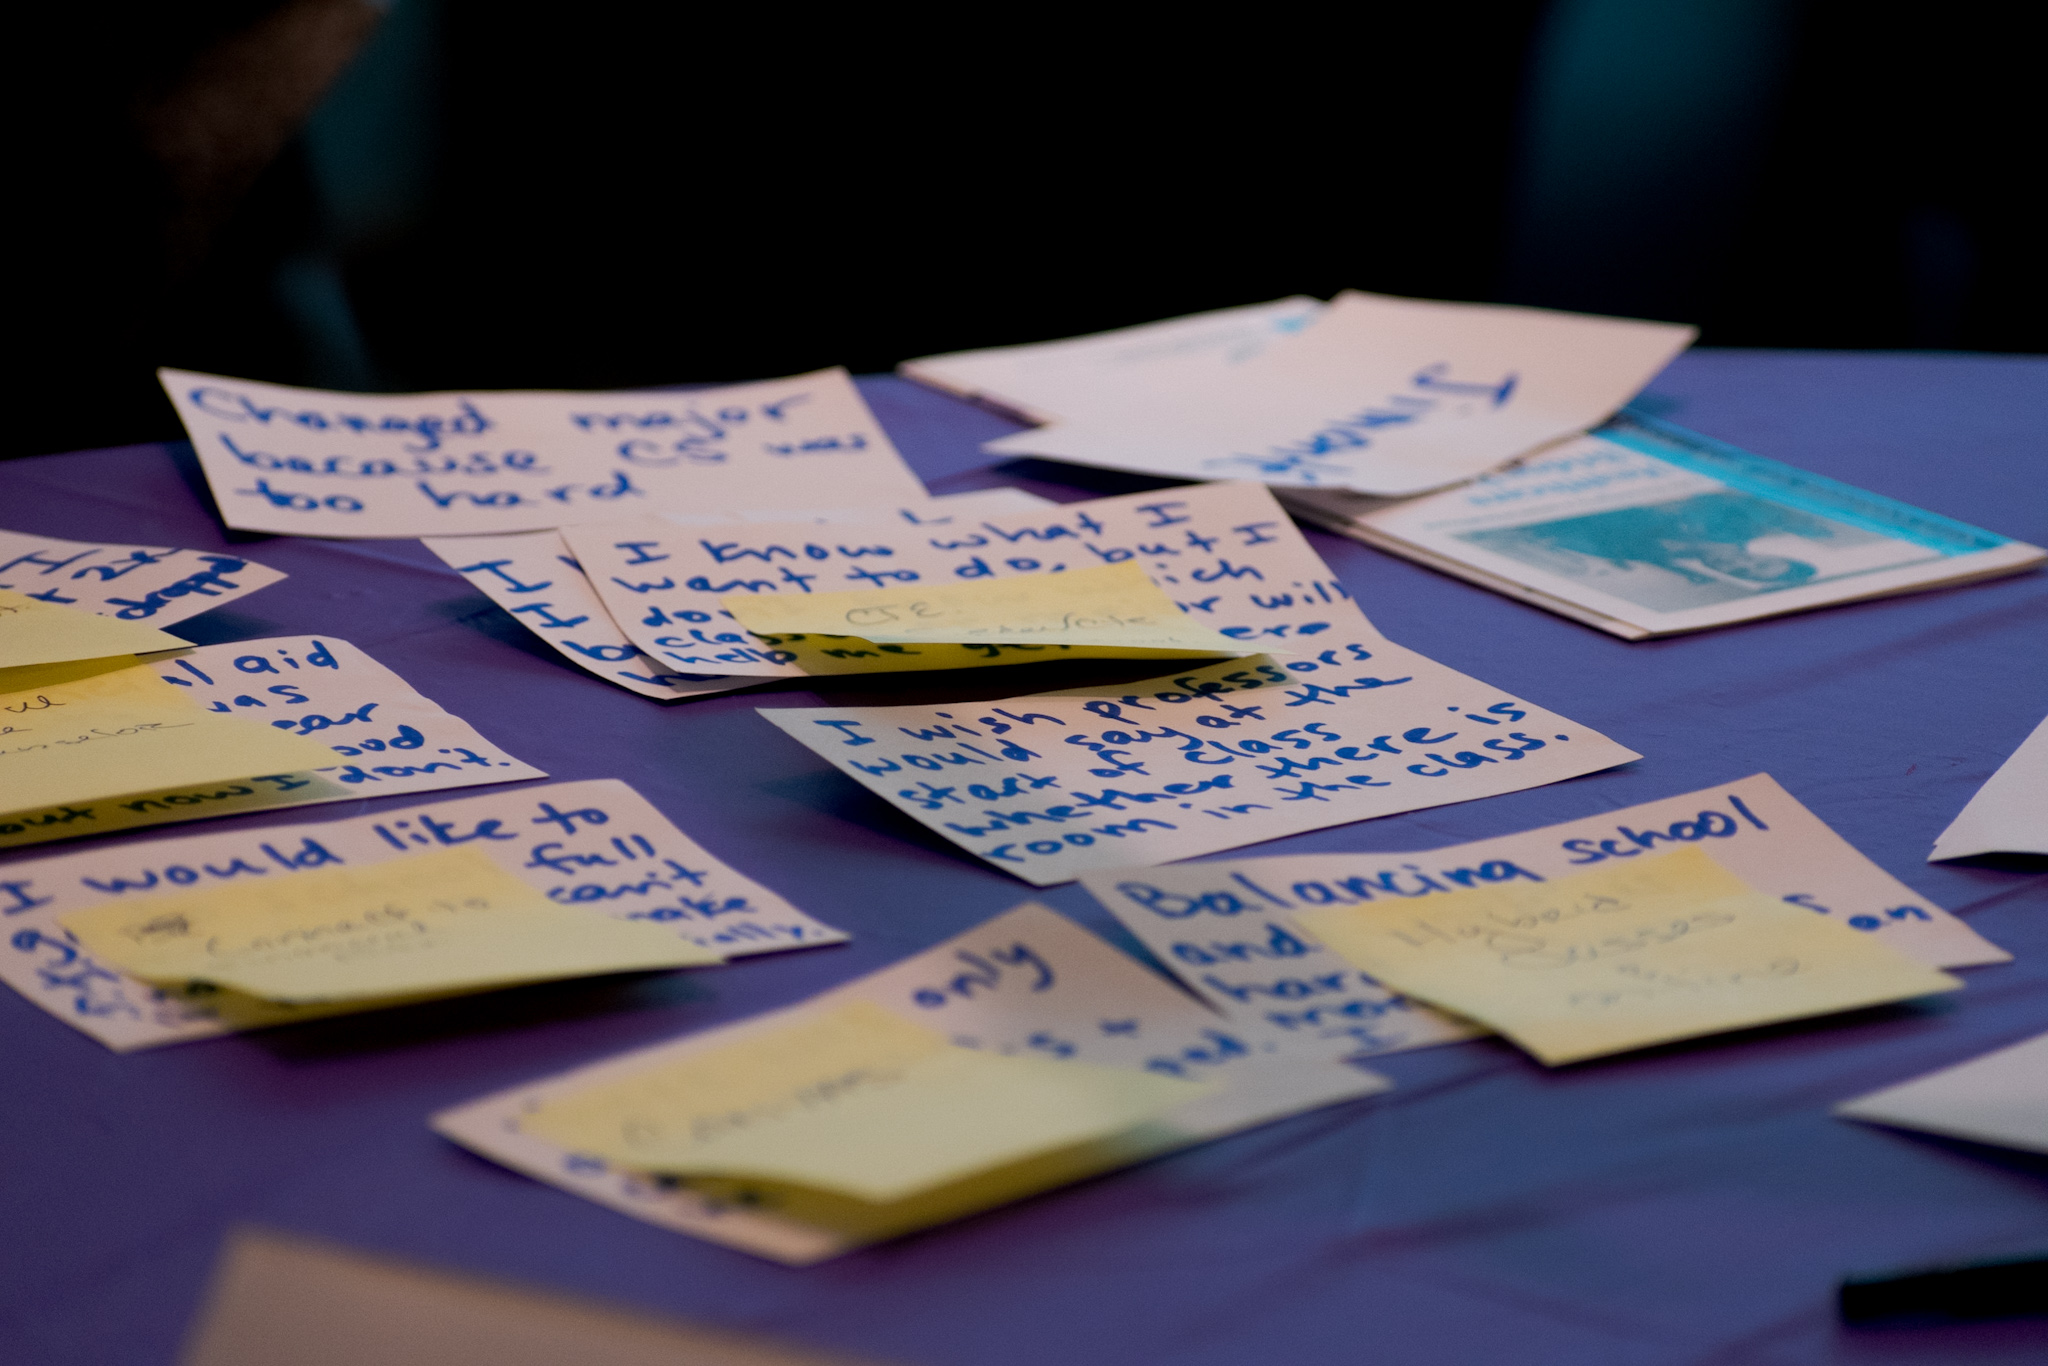 Student Jimonte Johnson expresses his school-related concerns on index cards. In response, members of the college community direct him to resources that they write on post-it notes. Photo by Cliff Fernandes/The Guardsman